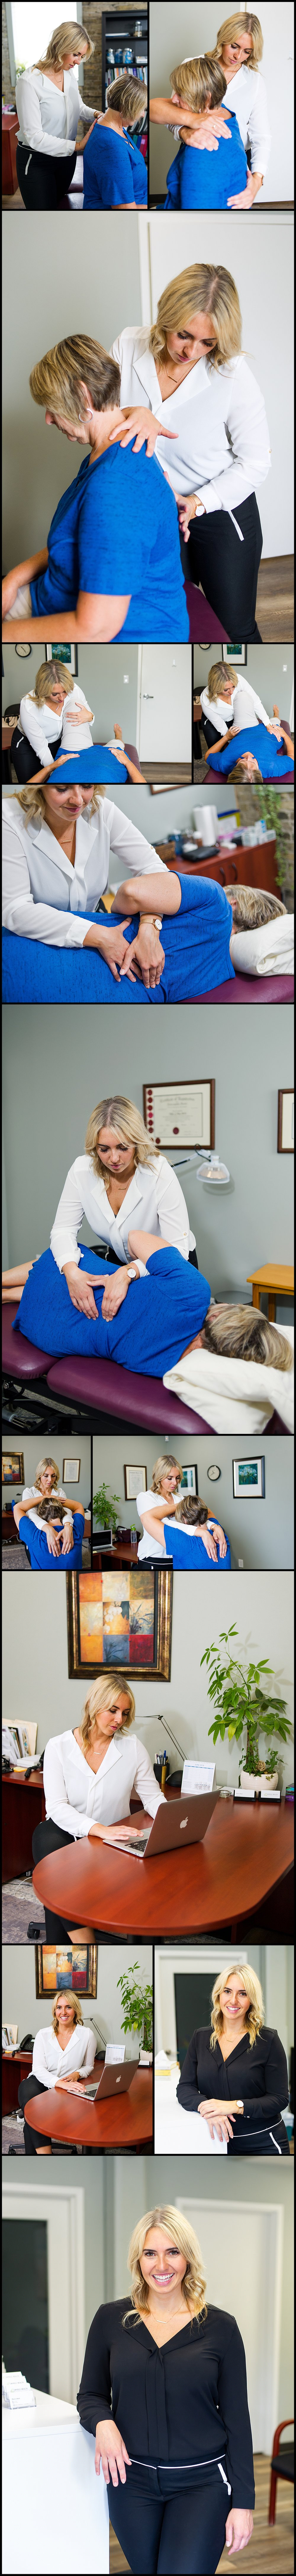 Osteopath Mallory Abbott London, Ontario Canada, Personal Brand Photography, Story telling Photography